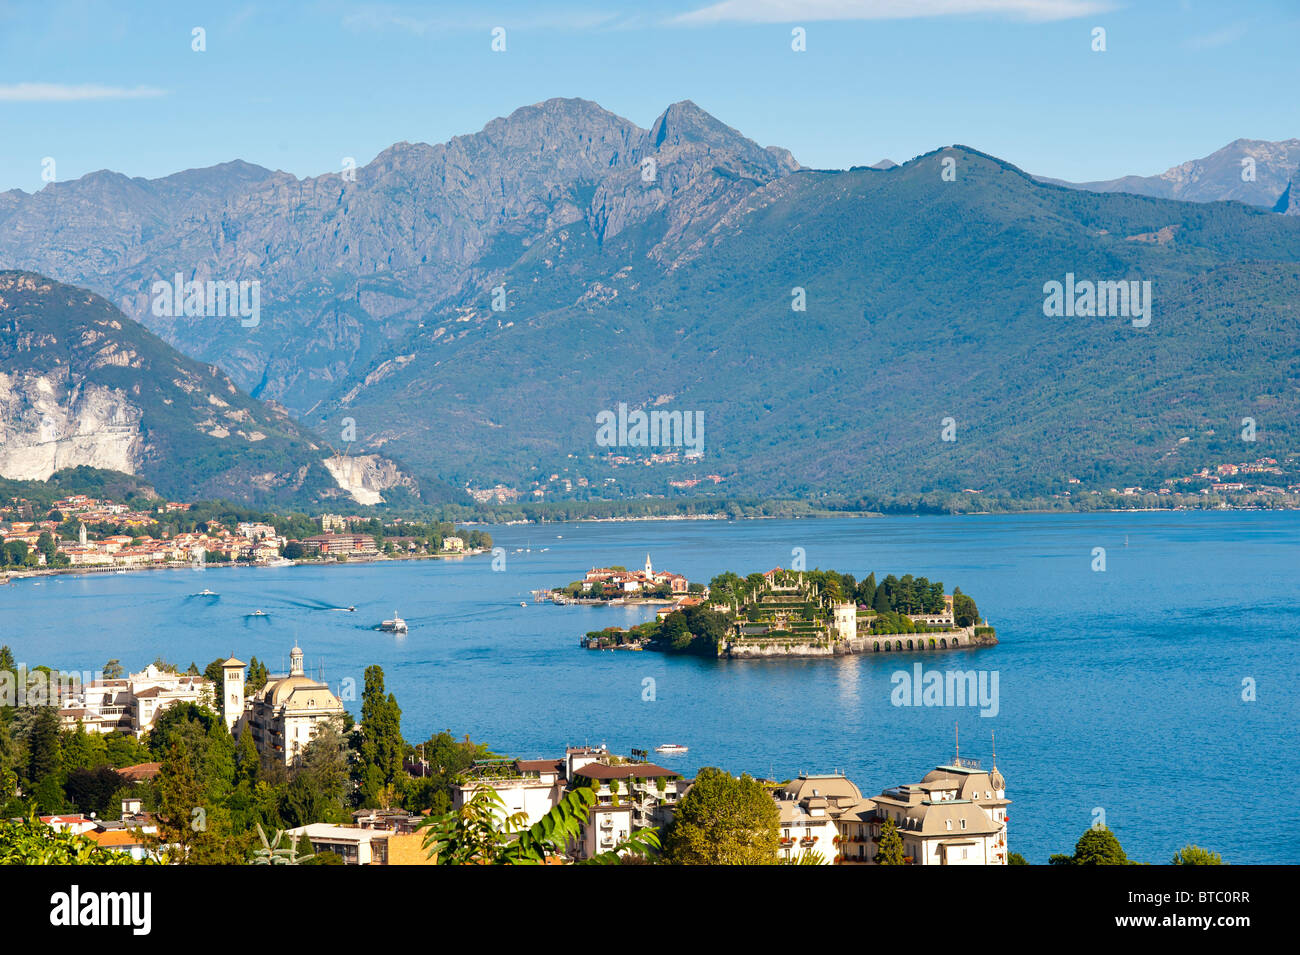 The town of Stresa and Isola Bella on Lago Maggiore Italy - Stock Image